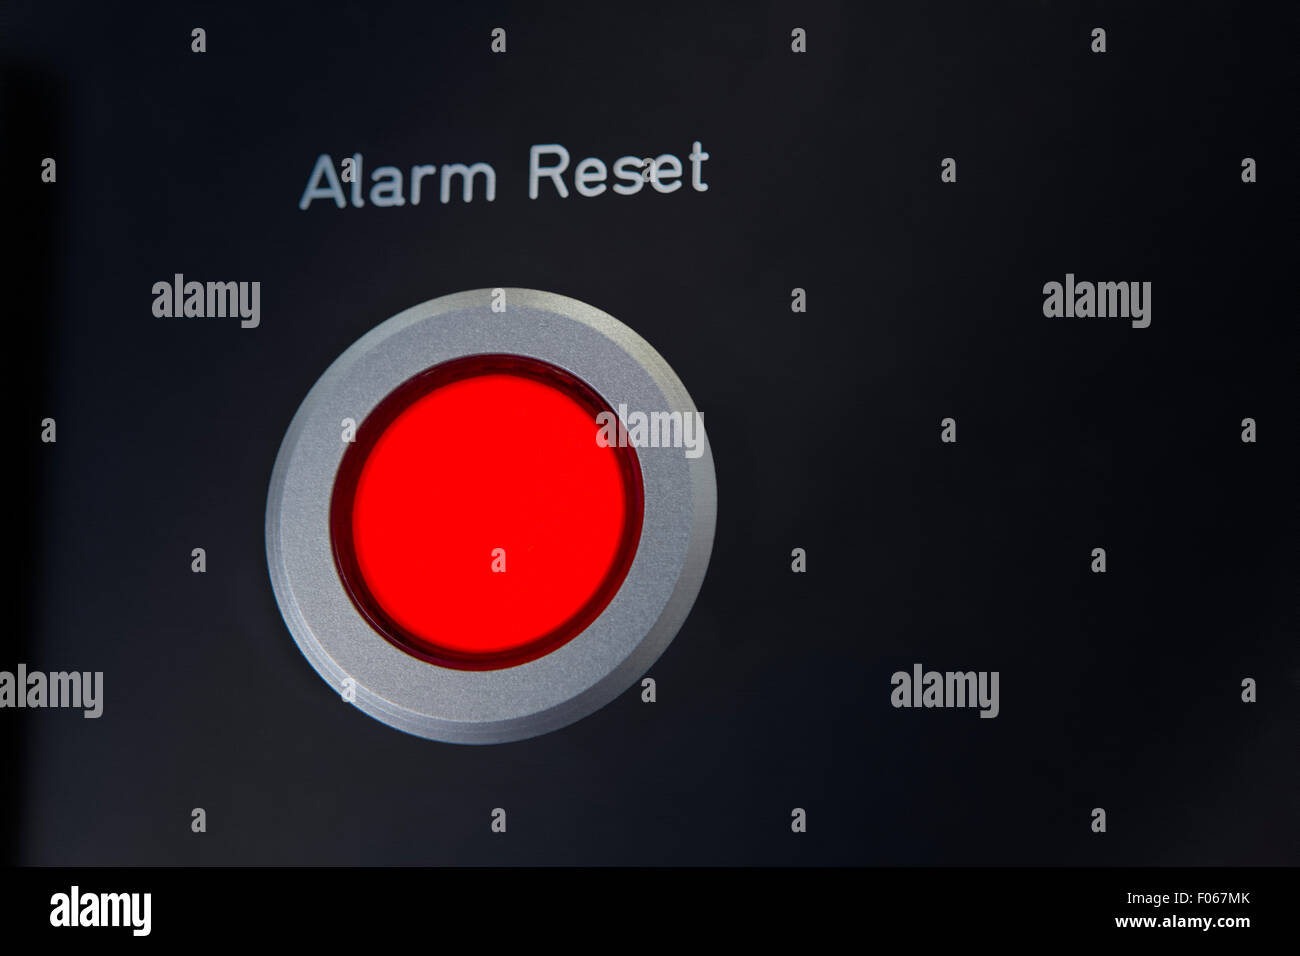 A red Alarm Reset button - Stock Image